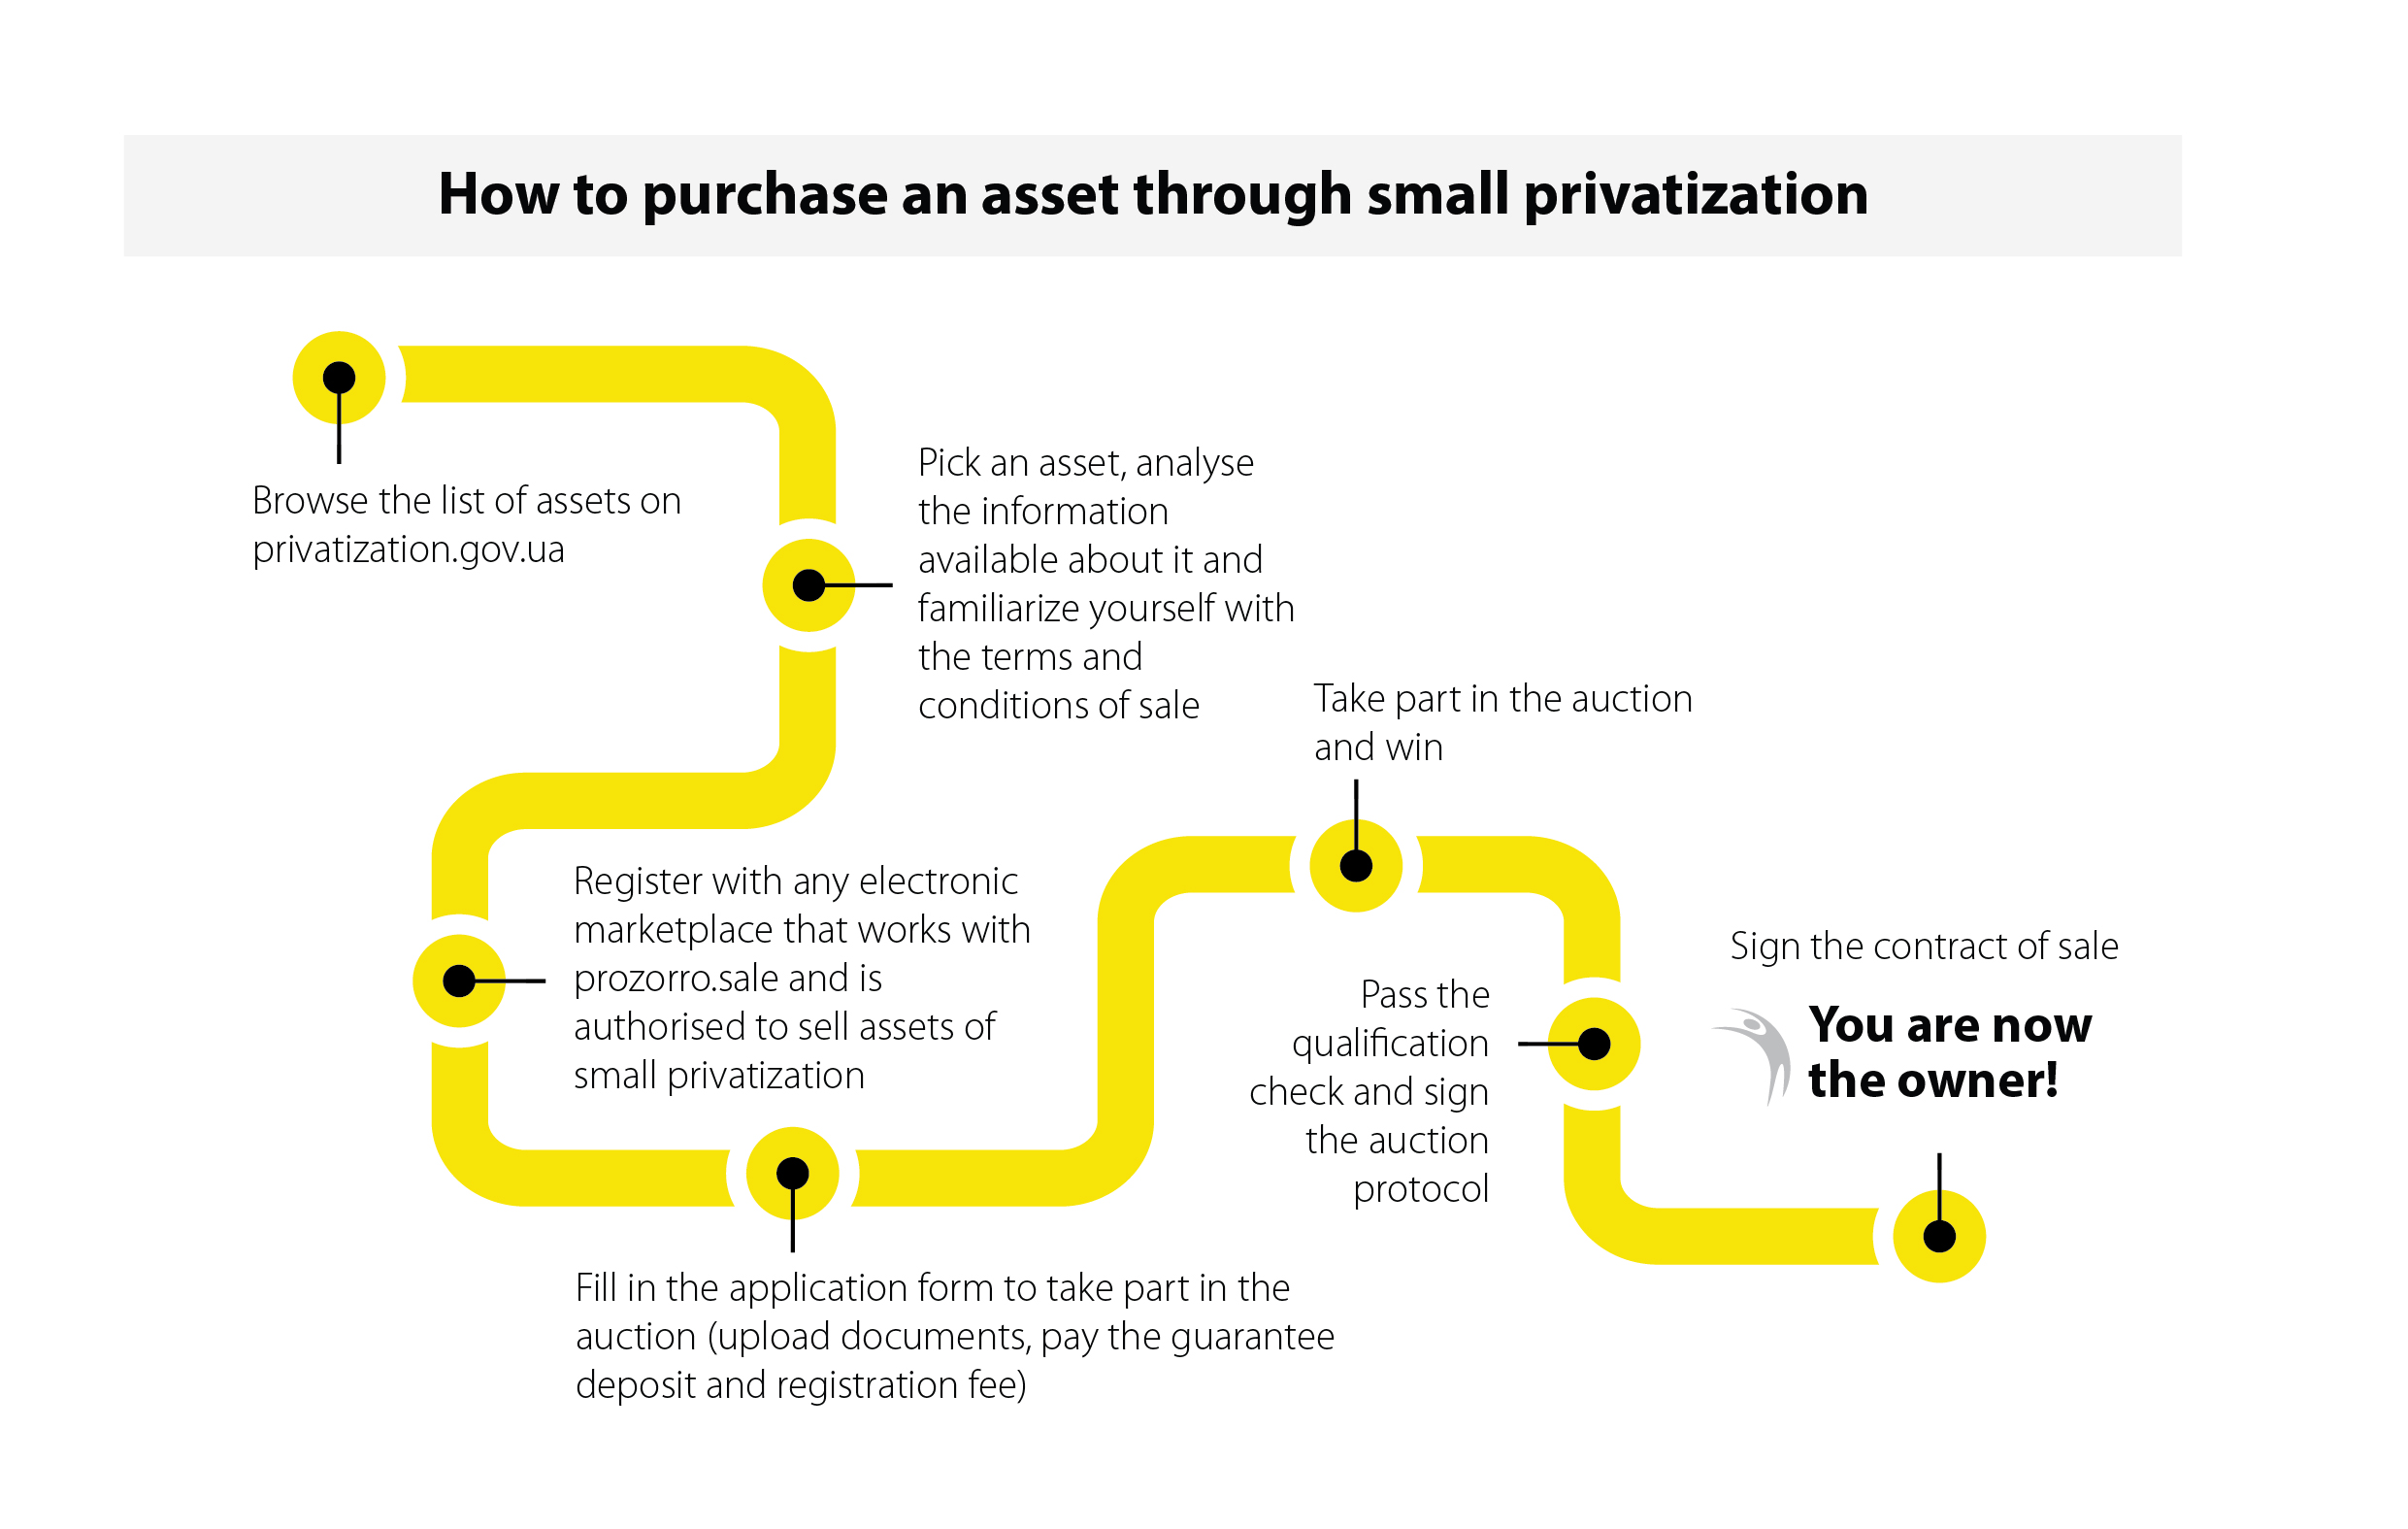 How to purchase an asset through small privatization